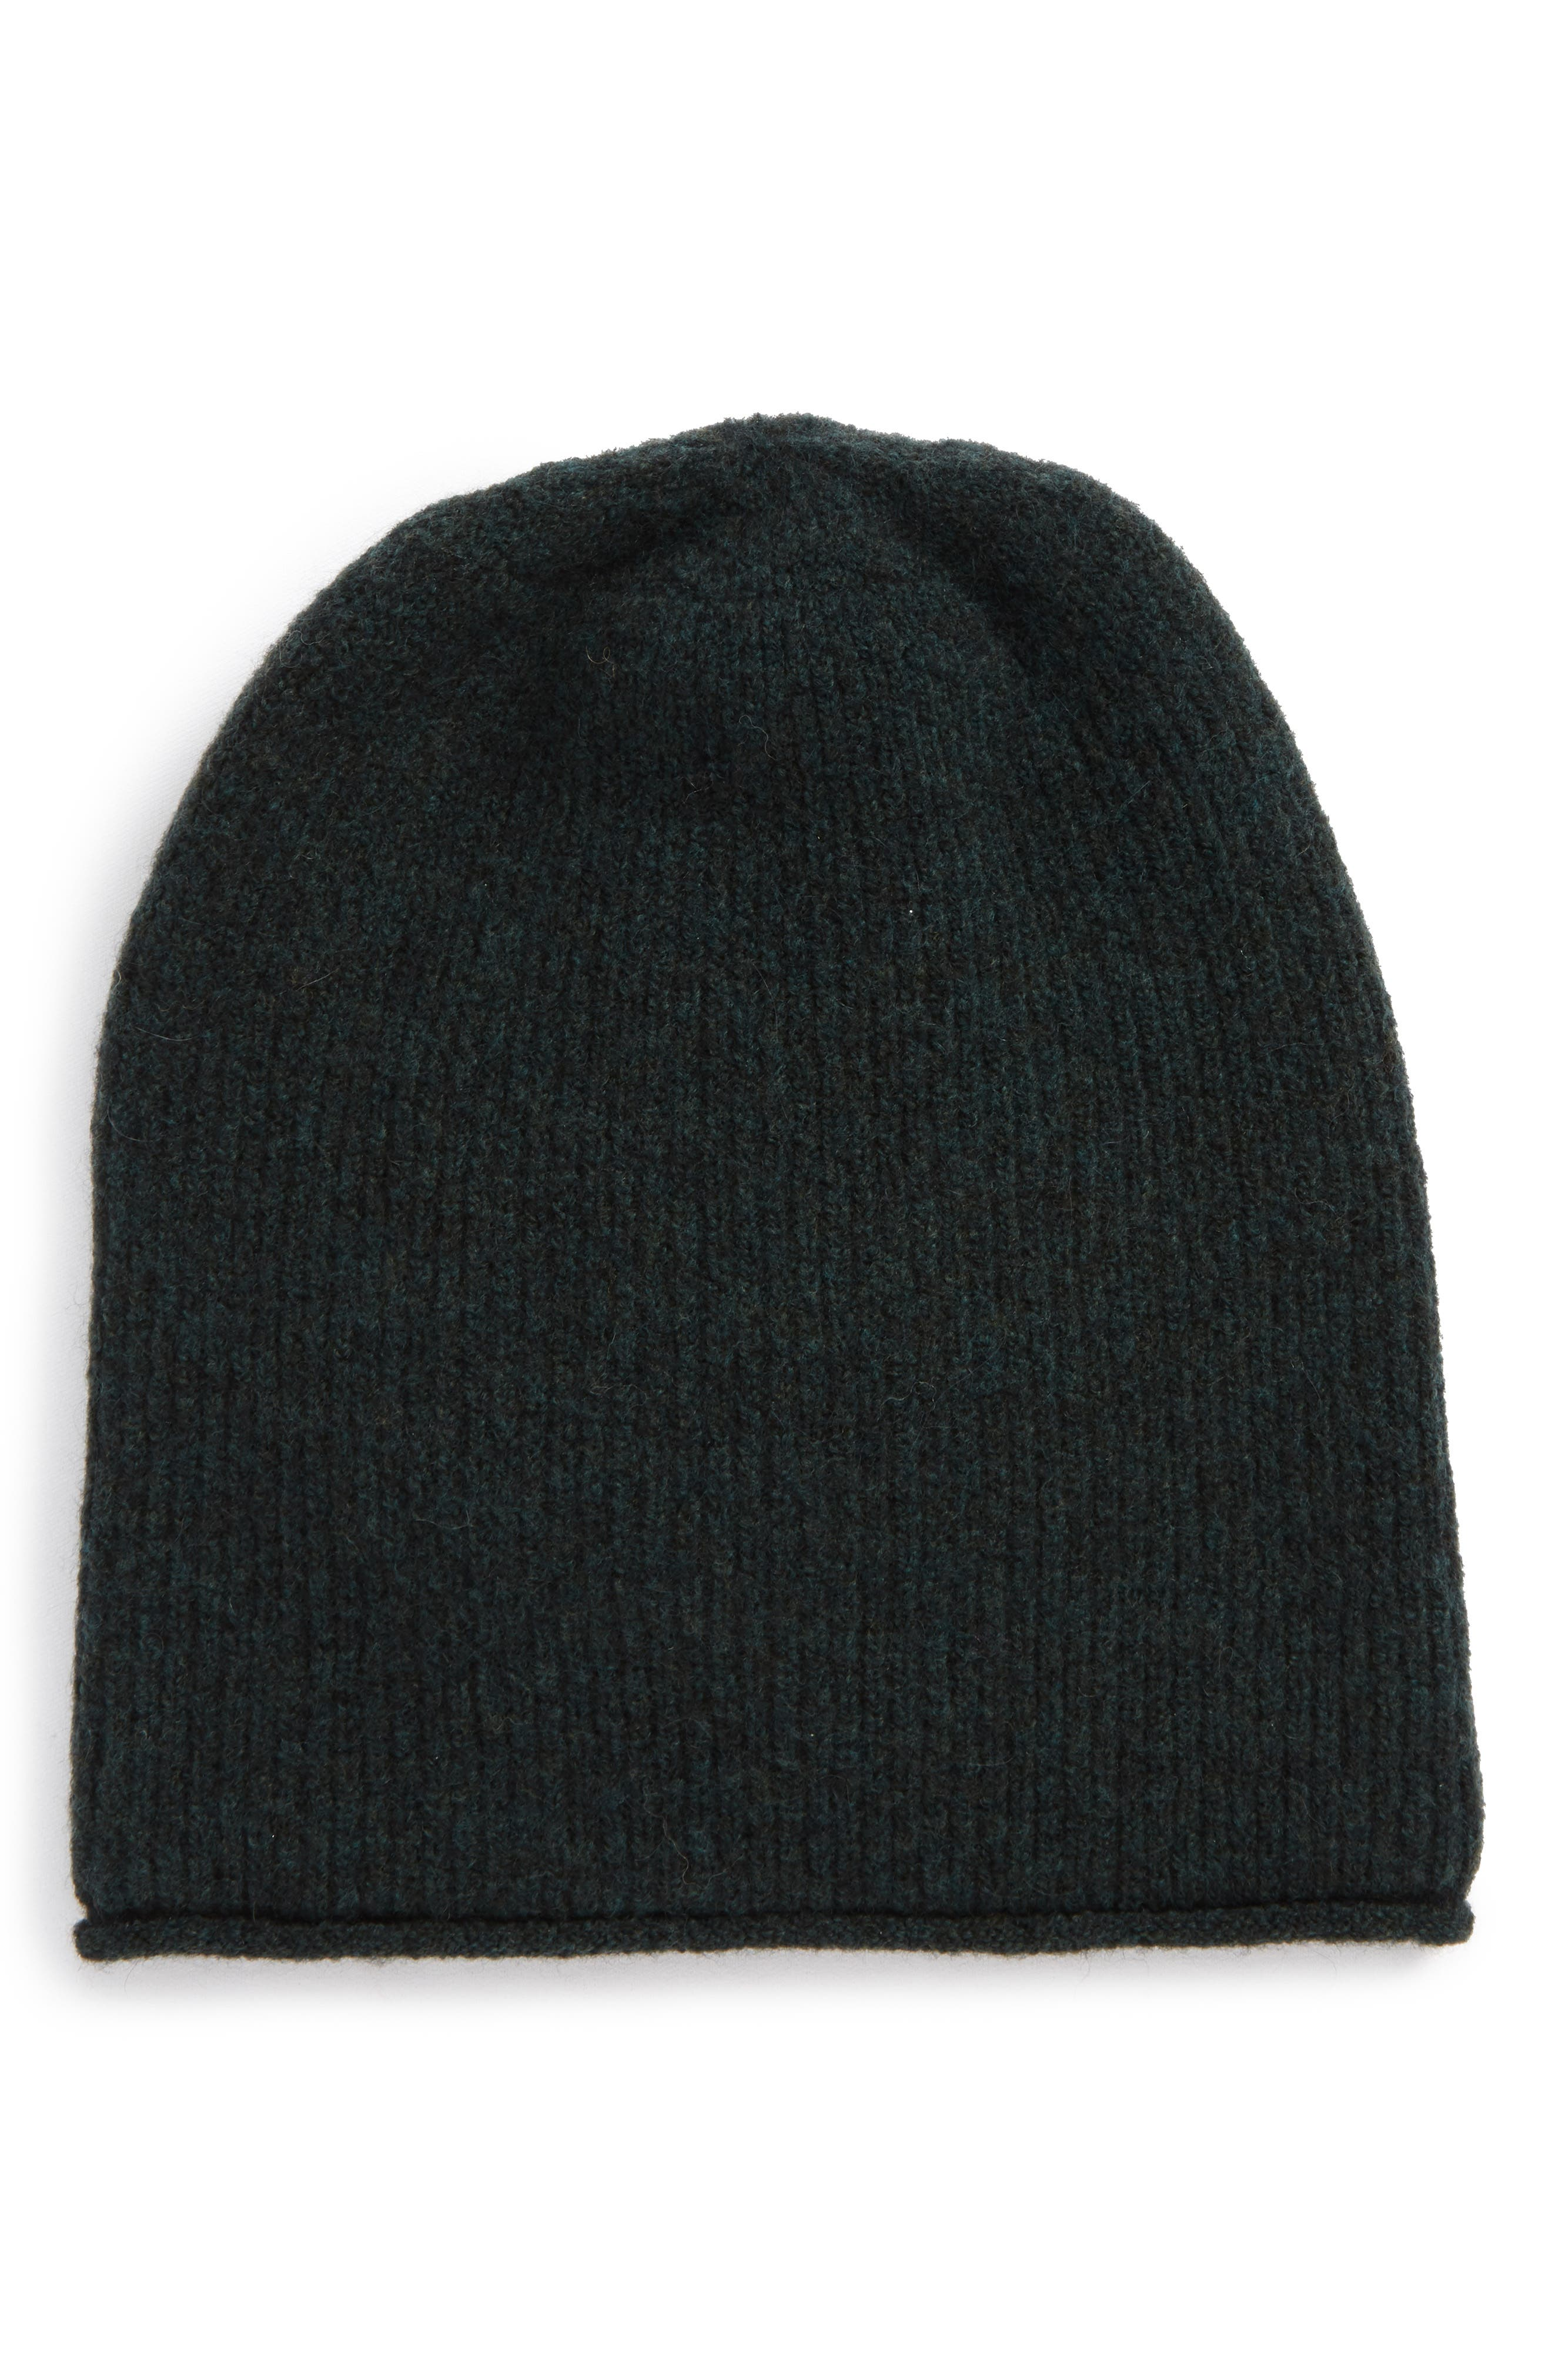 Main Image - Madewell Ryder Beanie